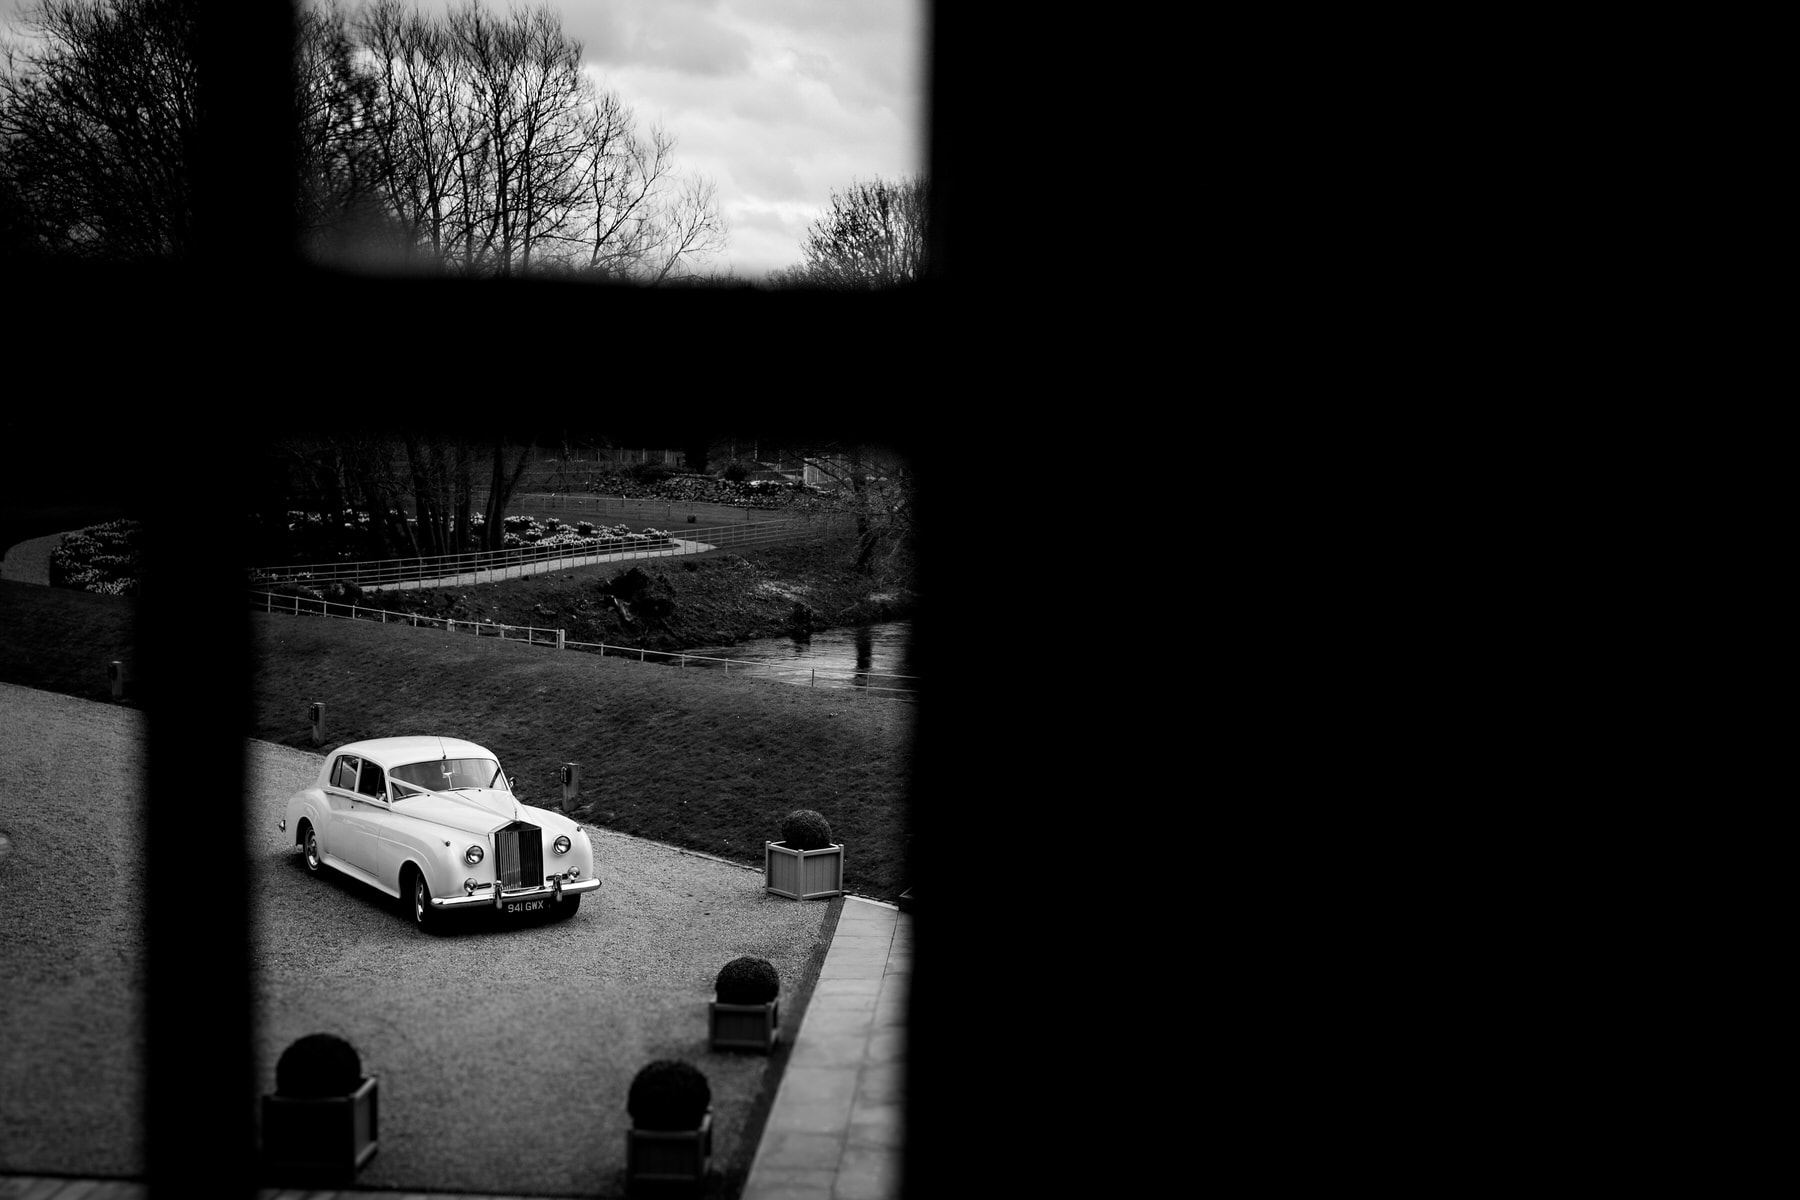 wedding car arrival in black and white